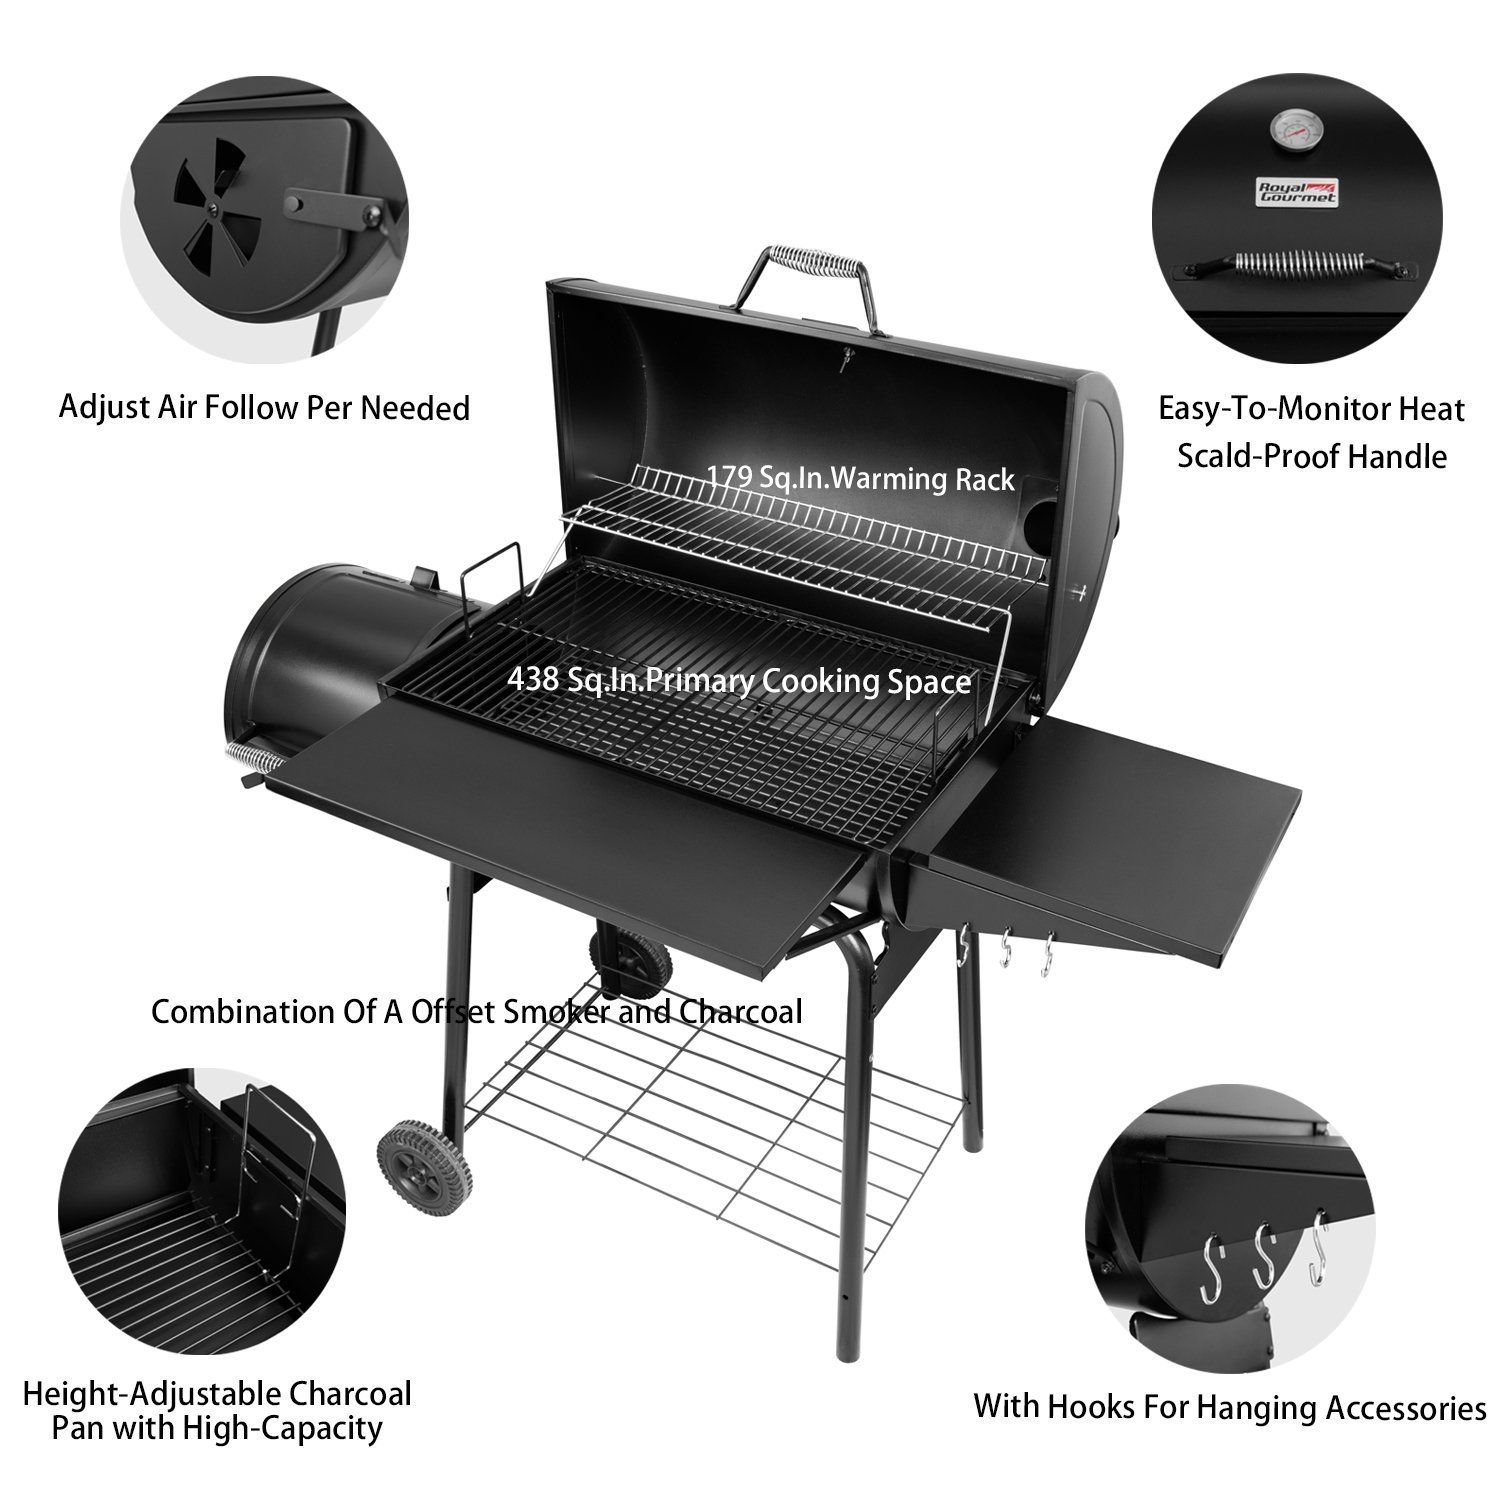 Royal Gourmet BBQ Charcoal Grill and Offset Smoker, 30'' L, 800 Square Inch, Outdoor for Camping, Black by Royal Gourmet (Image #3)